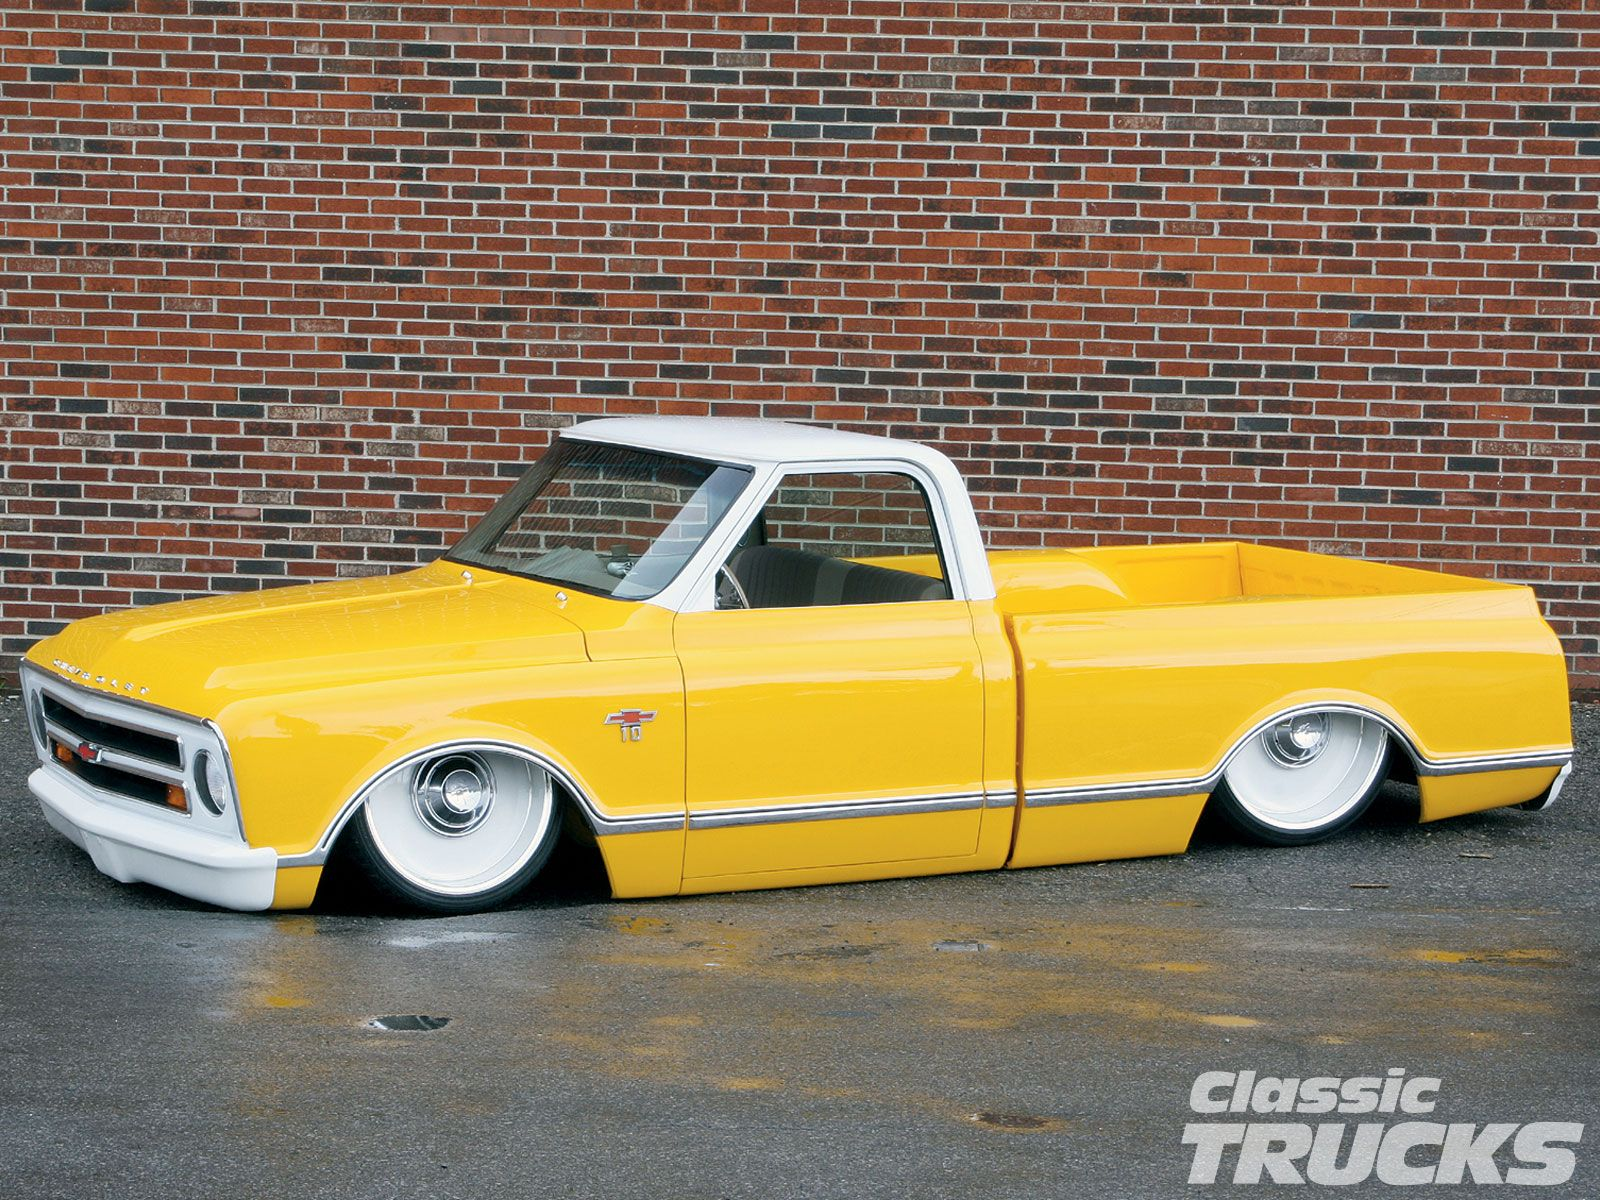 130 best chevy truck ideas images on pinterest c10 trucks 72 67 72 chevy truck custom modifications 1001clt01z1968chevyc10pickuptruckloweredtruckg sciox Image collections